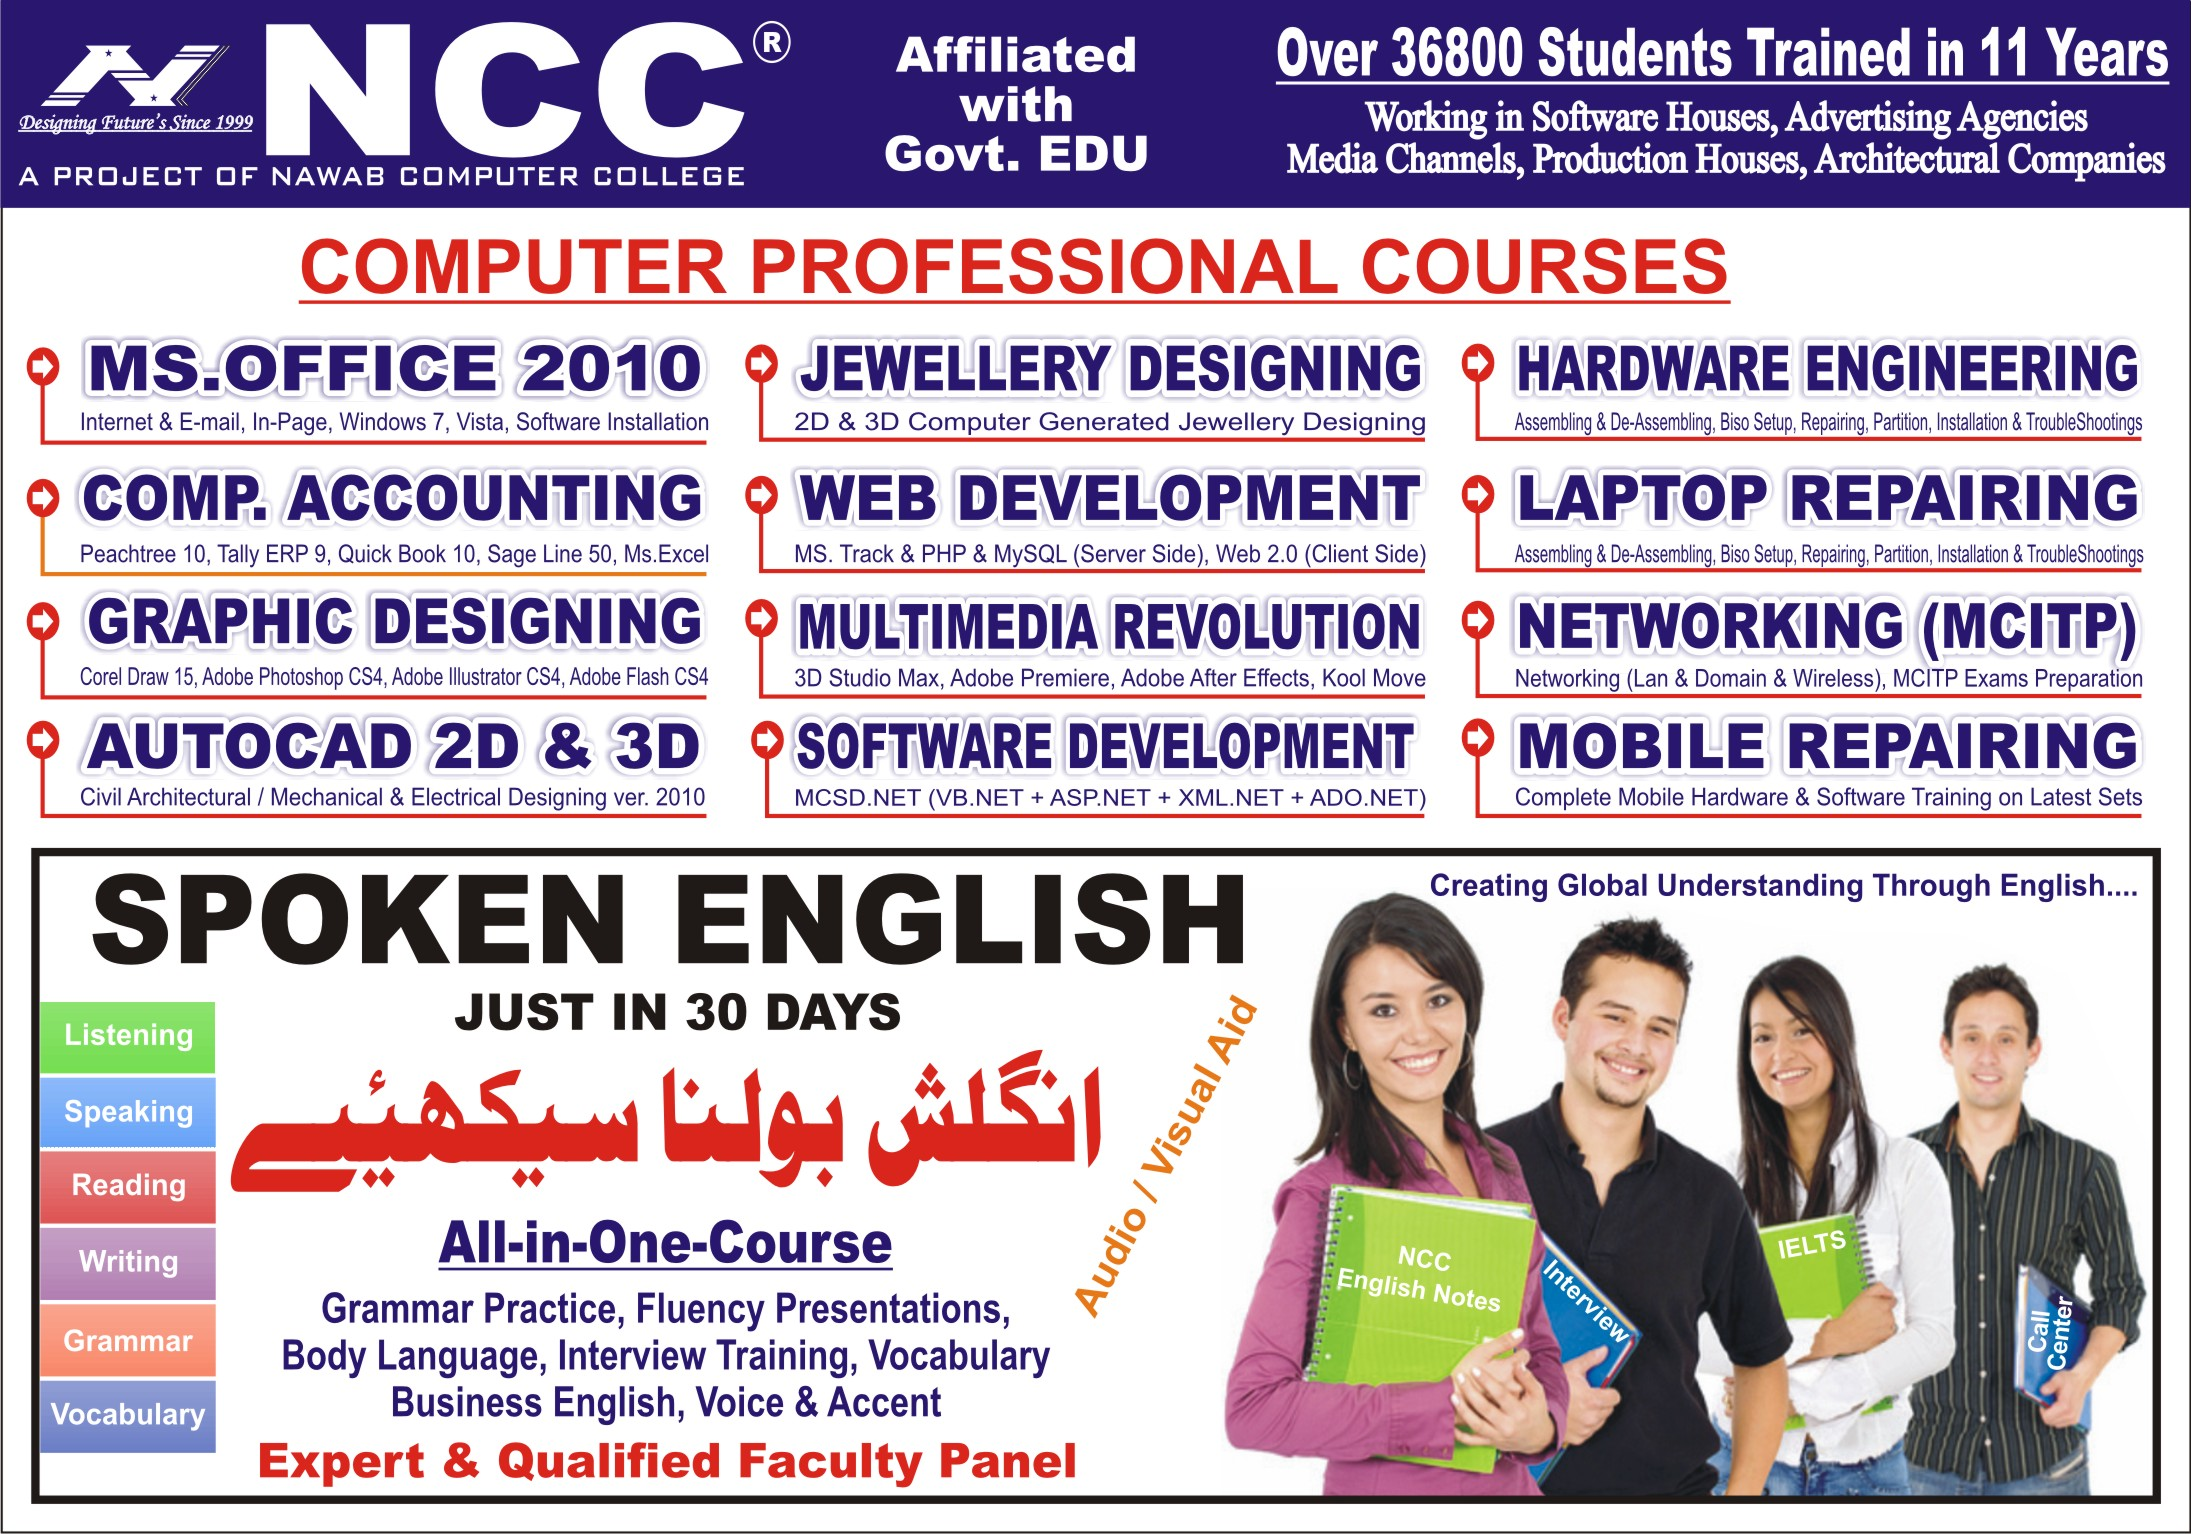 ncc-computer-courses-2013.jpg